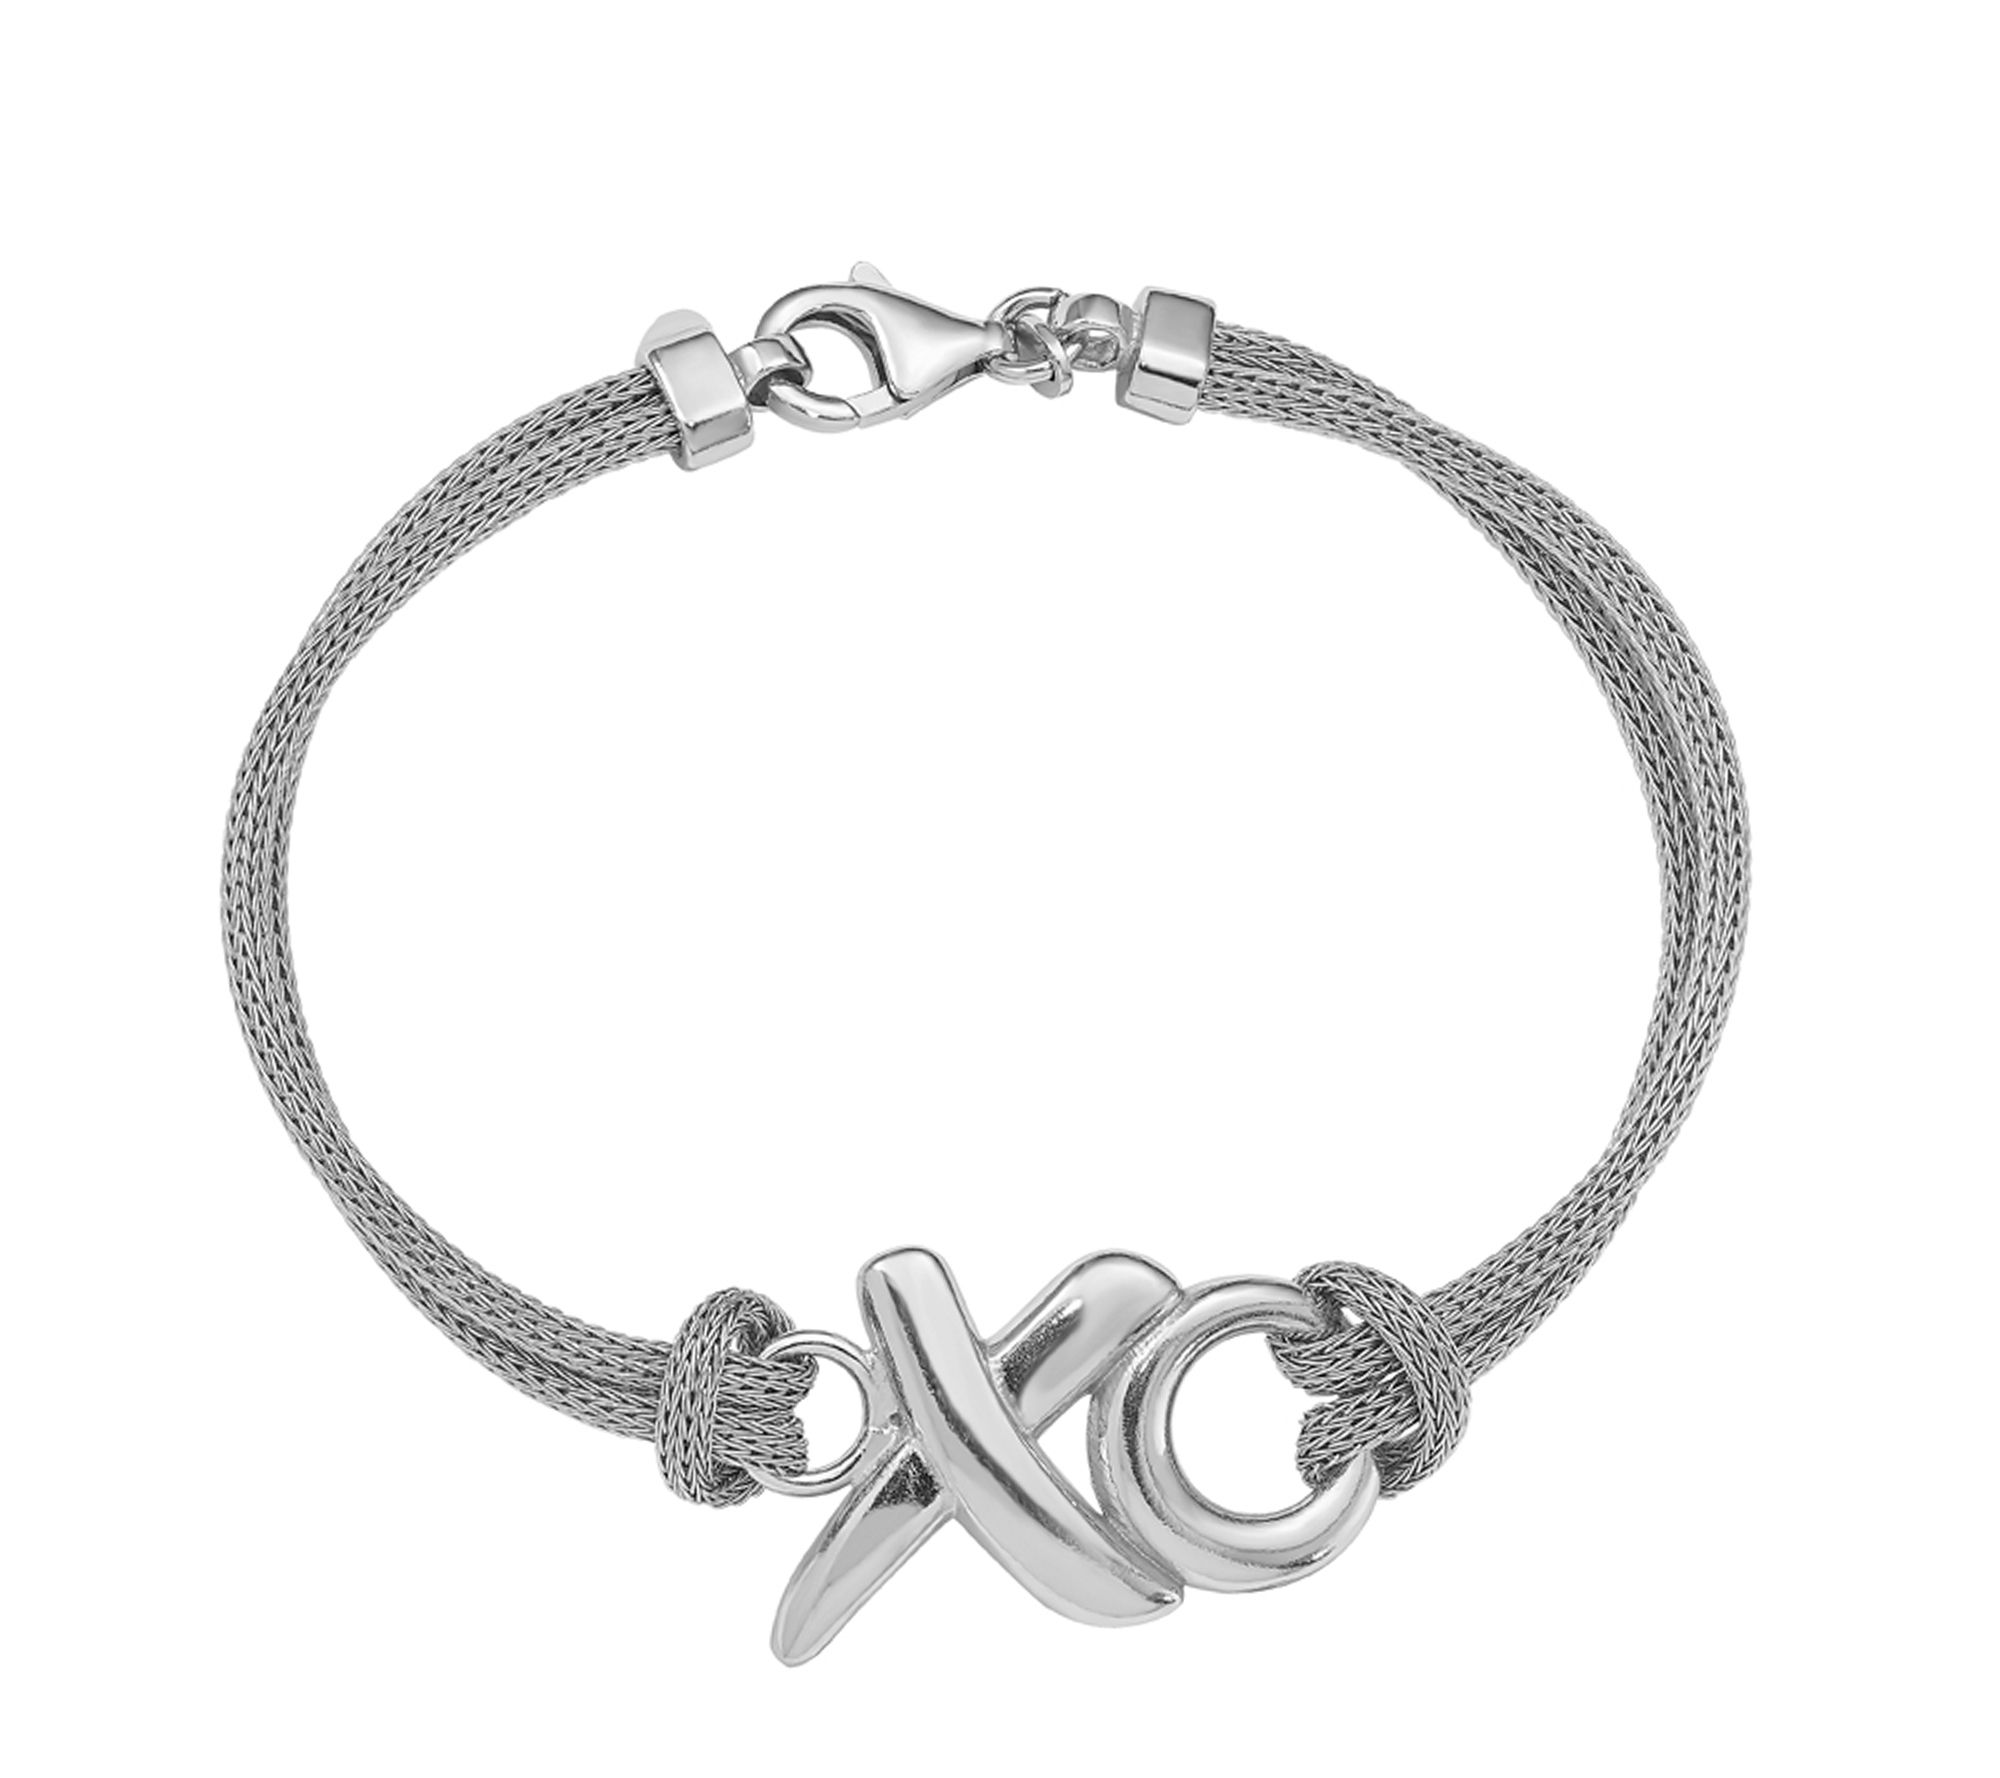 Sterling Silver Polished XO Mesh Necklace 18